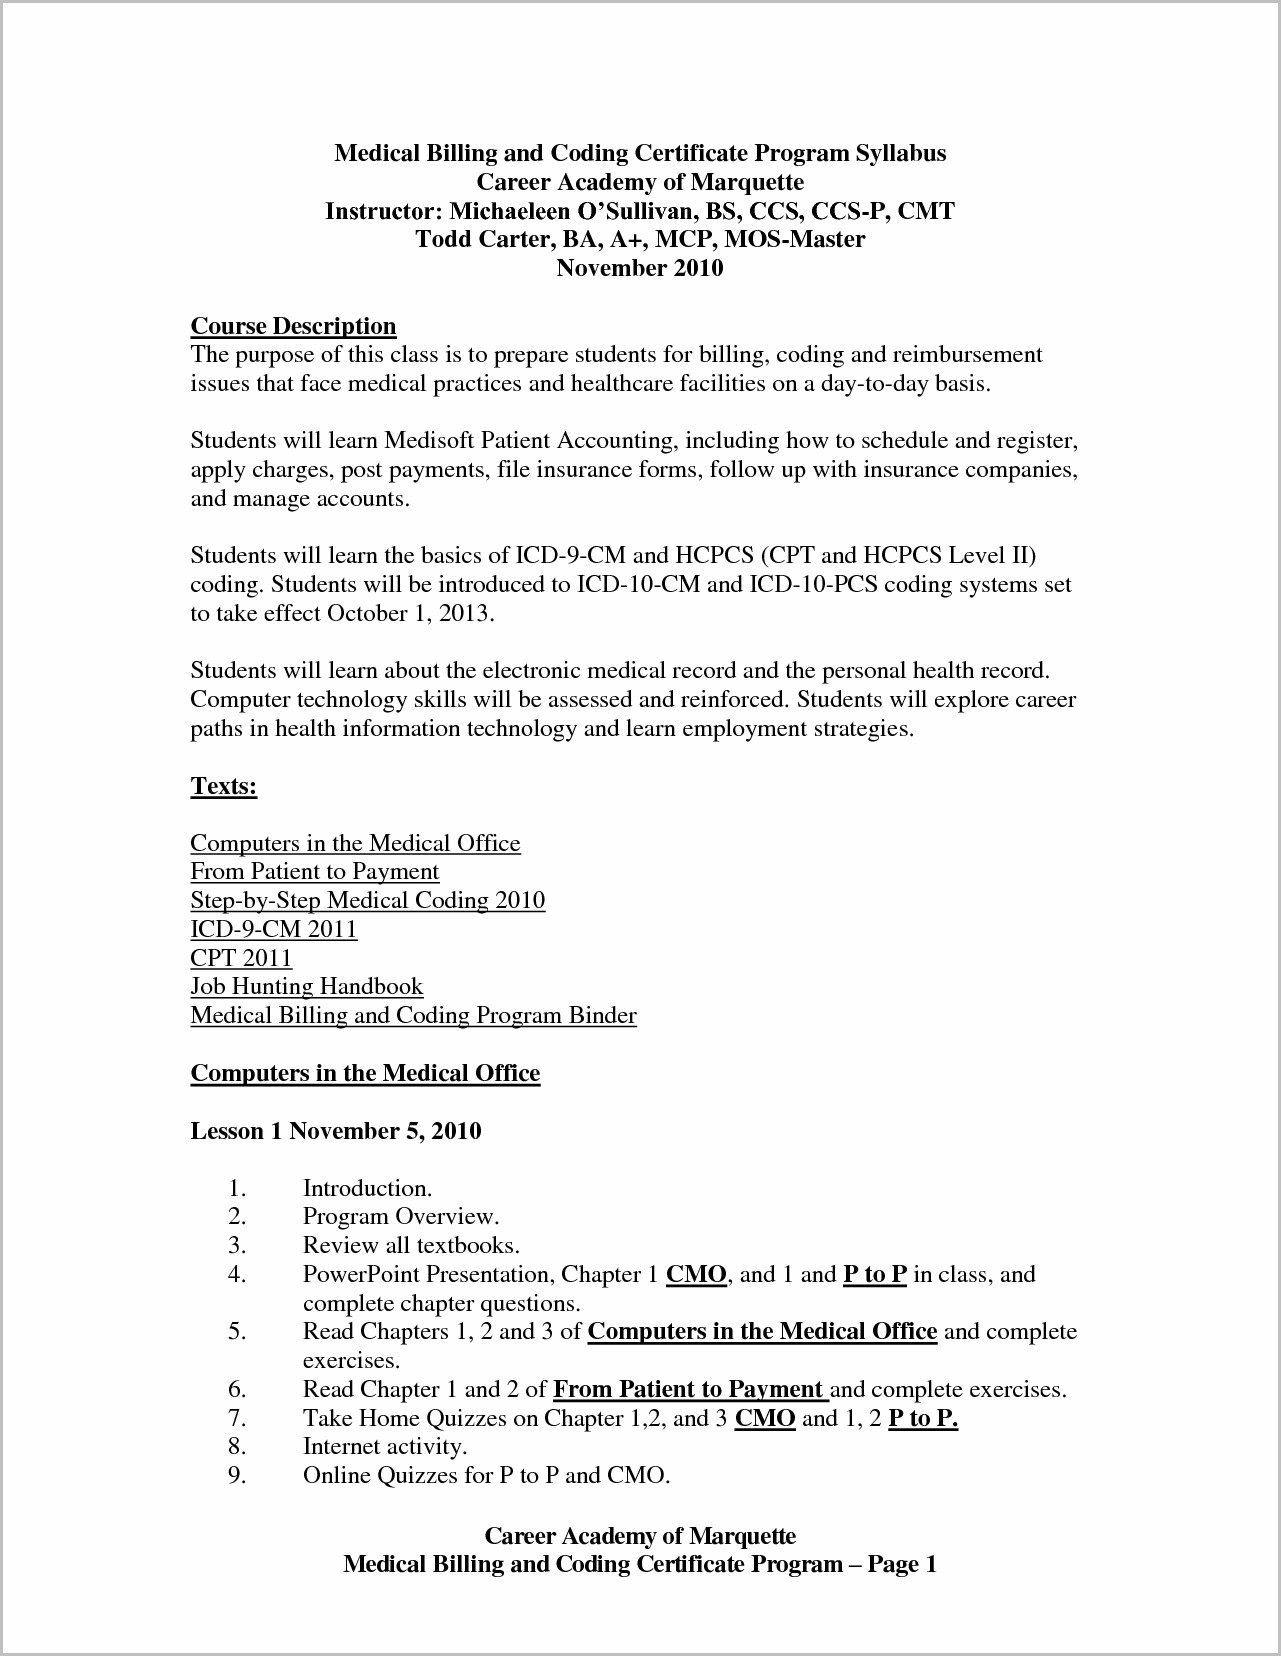 Resume Cover Letter Samples For Medical Billing And Coding